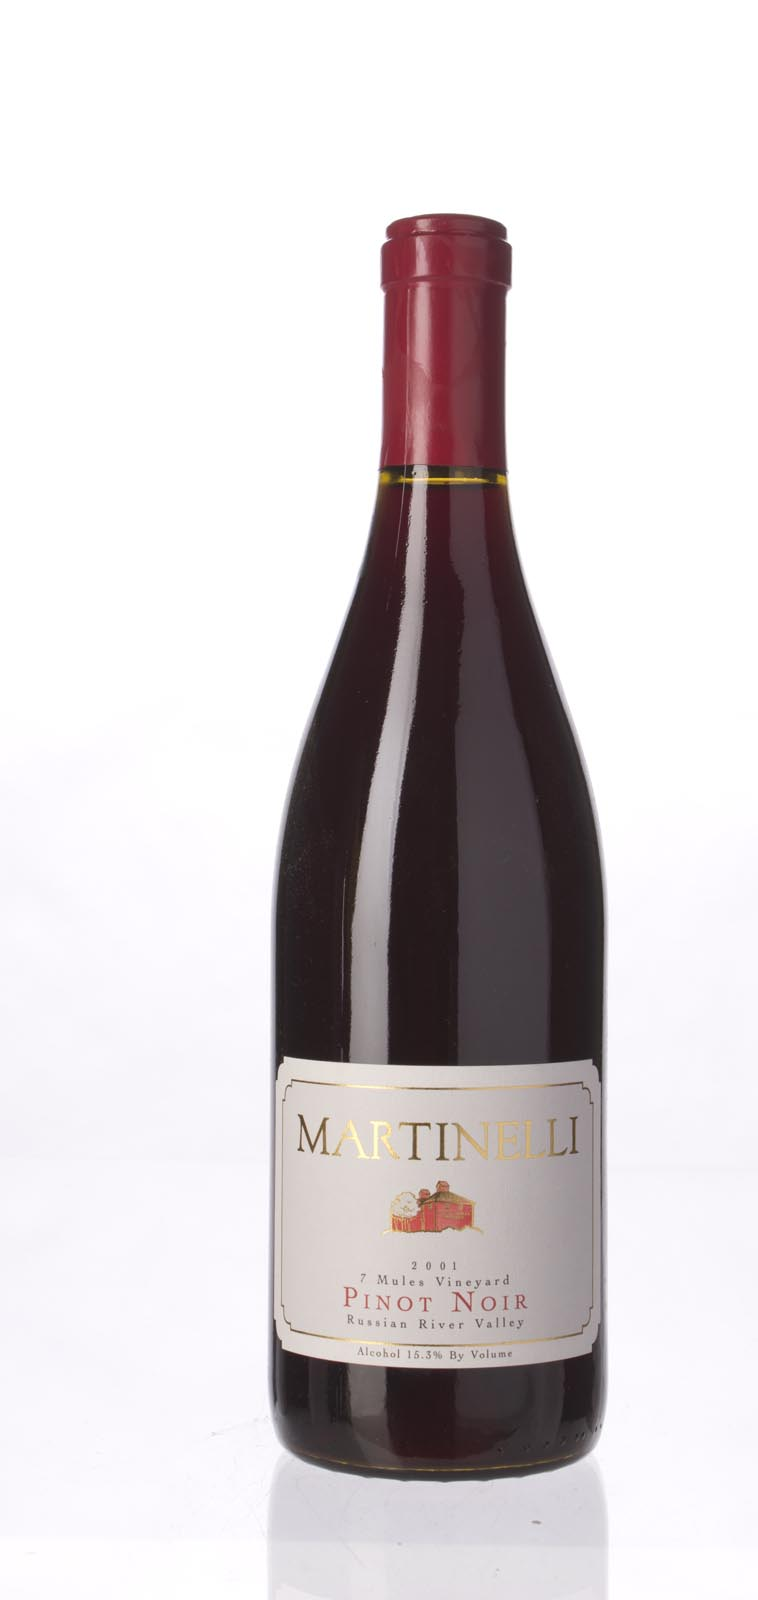 Martinelli Pinot Noir Seven Mules Vineyard 2001, 750mL (WS93) from The BPW - Merchants of rare and fine wines.